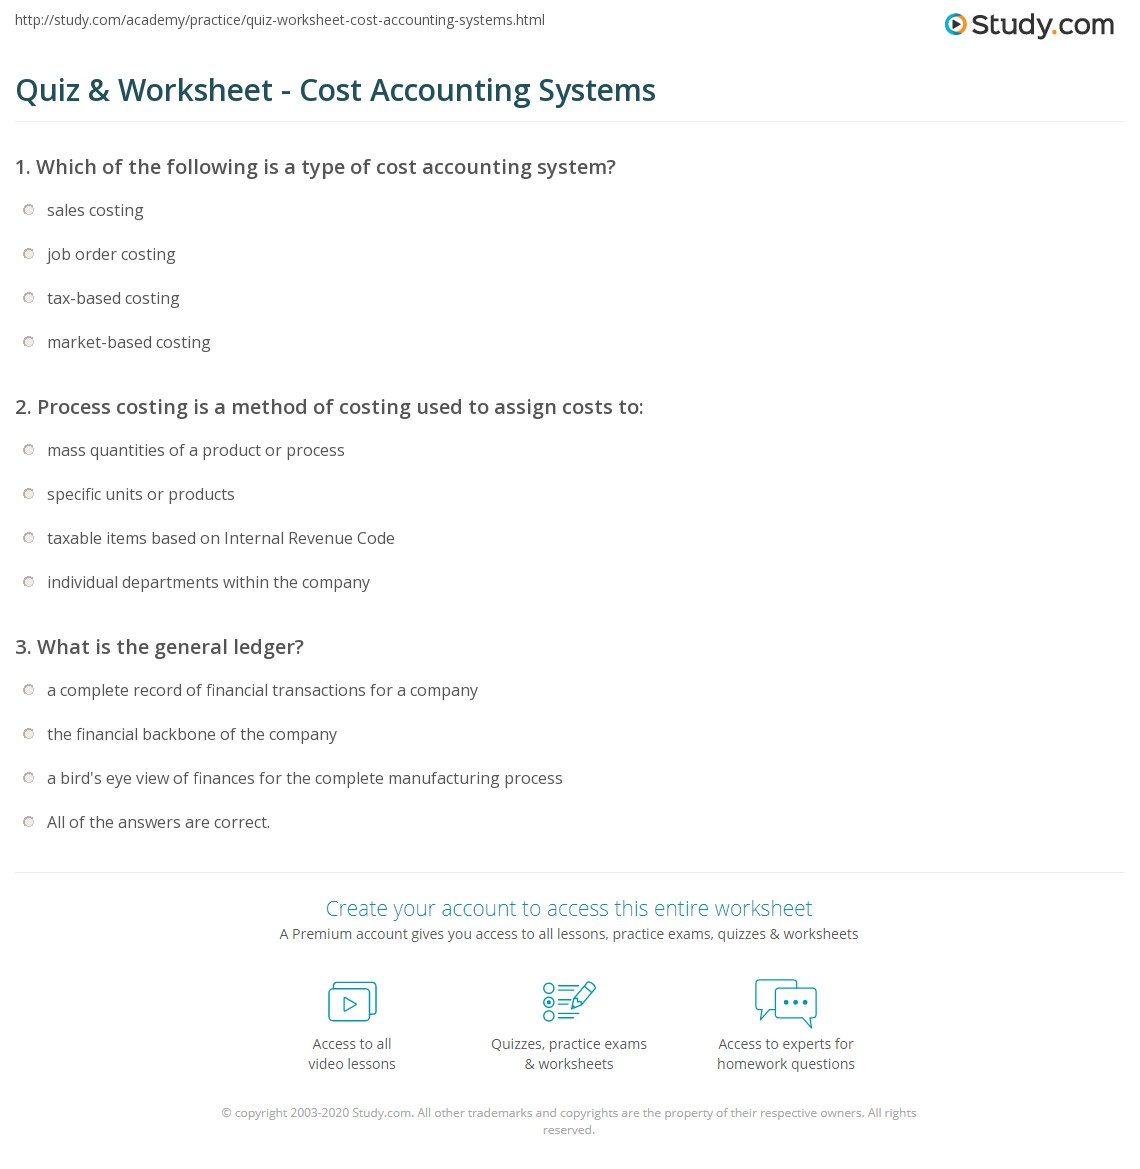 Quiz & Worksheet - Cost Accounting Systems | Study.com